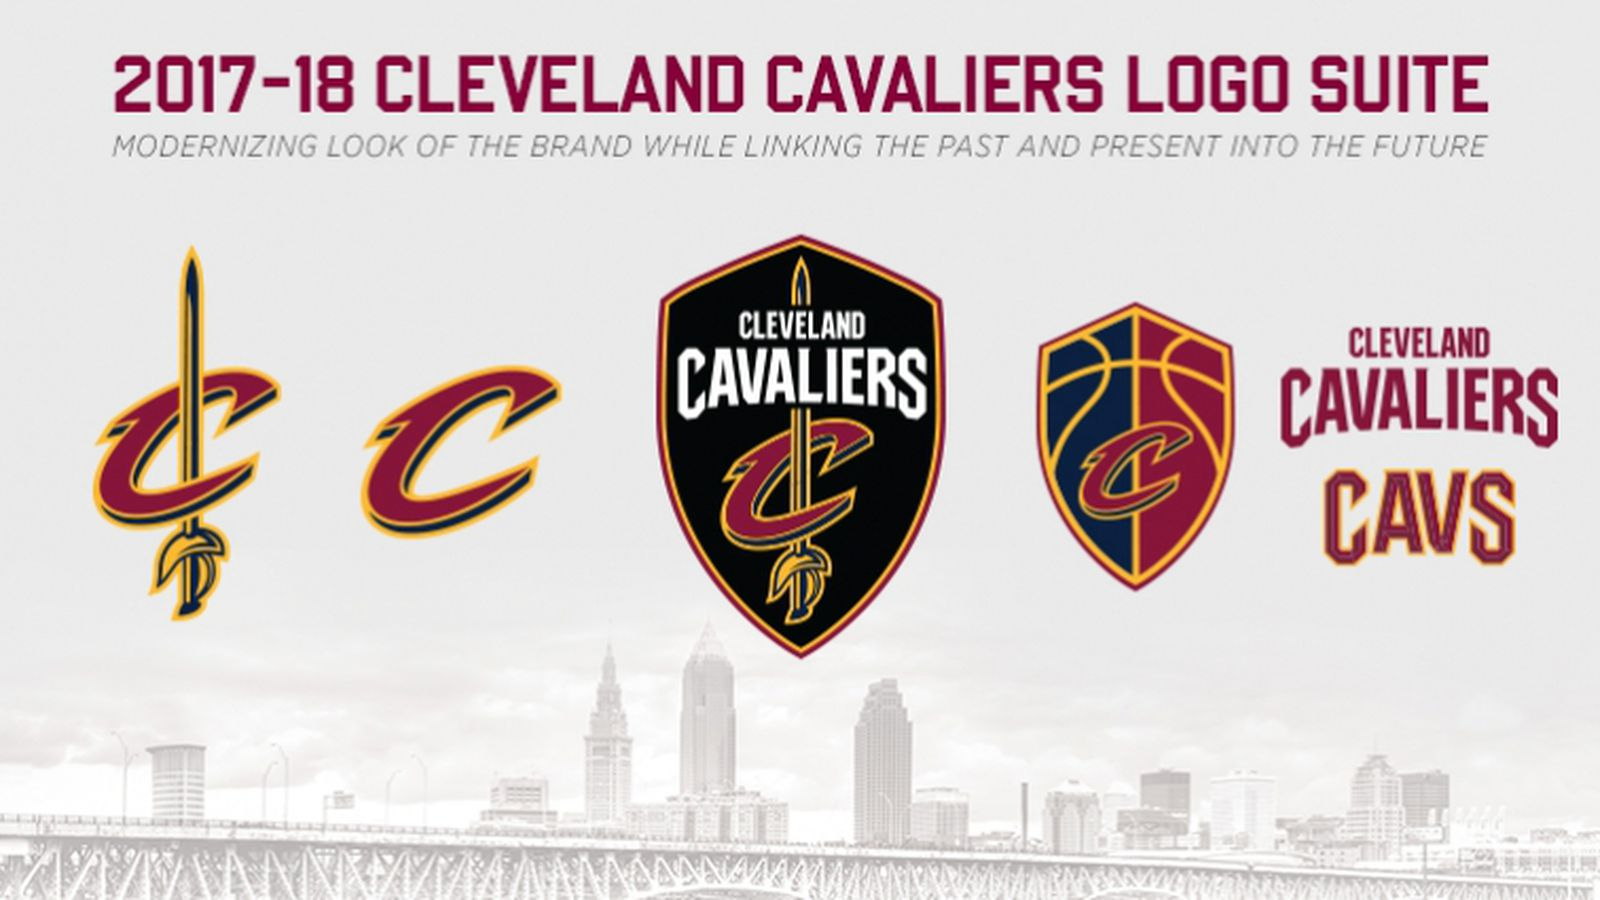 Cavs announce new logo suite for 2017-18 season - Fear The Sword